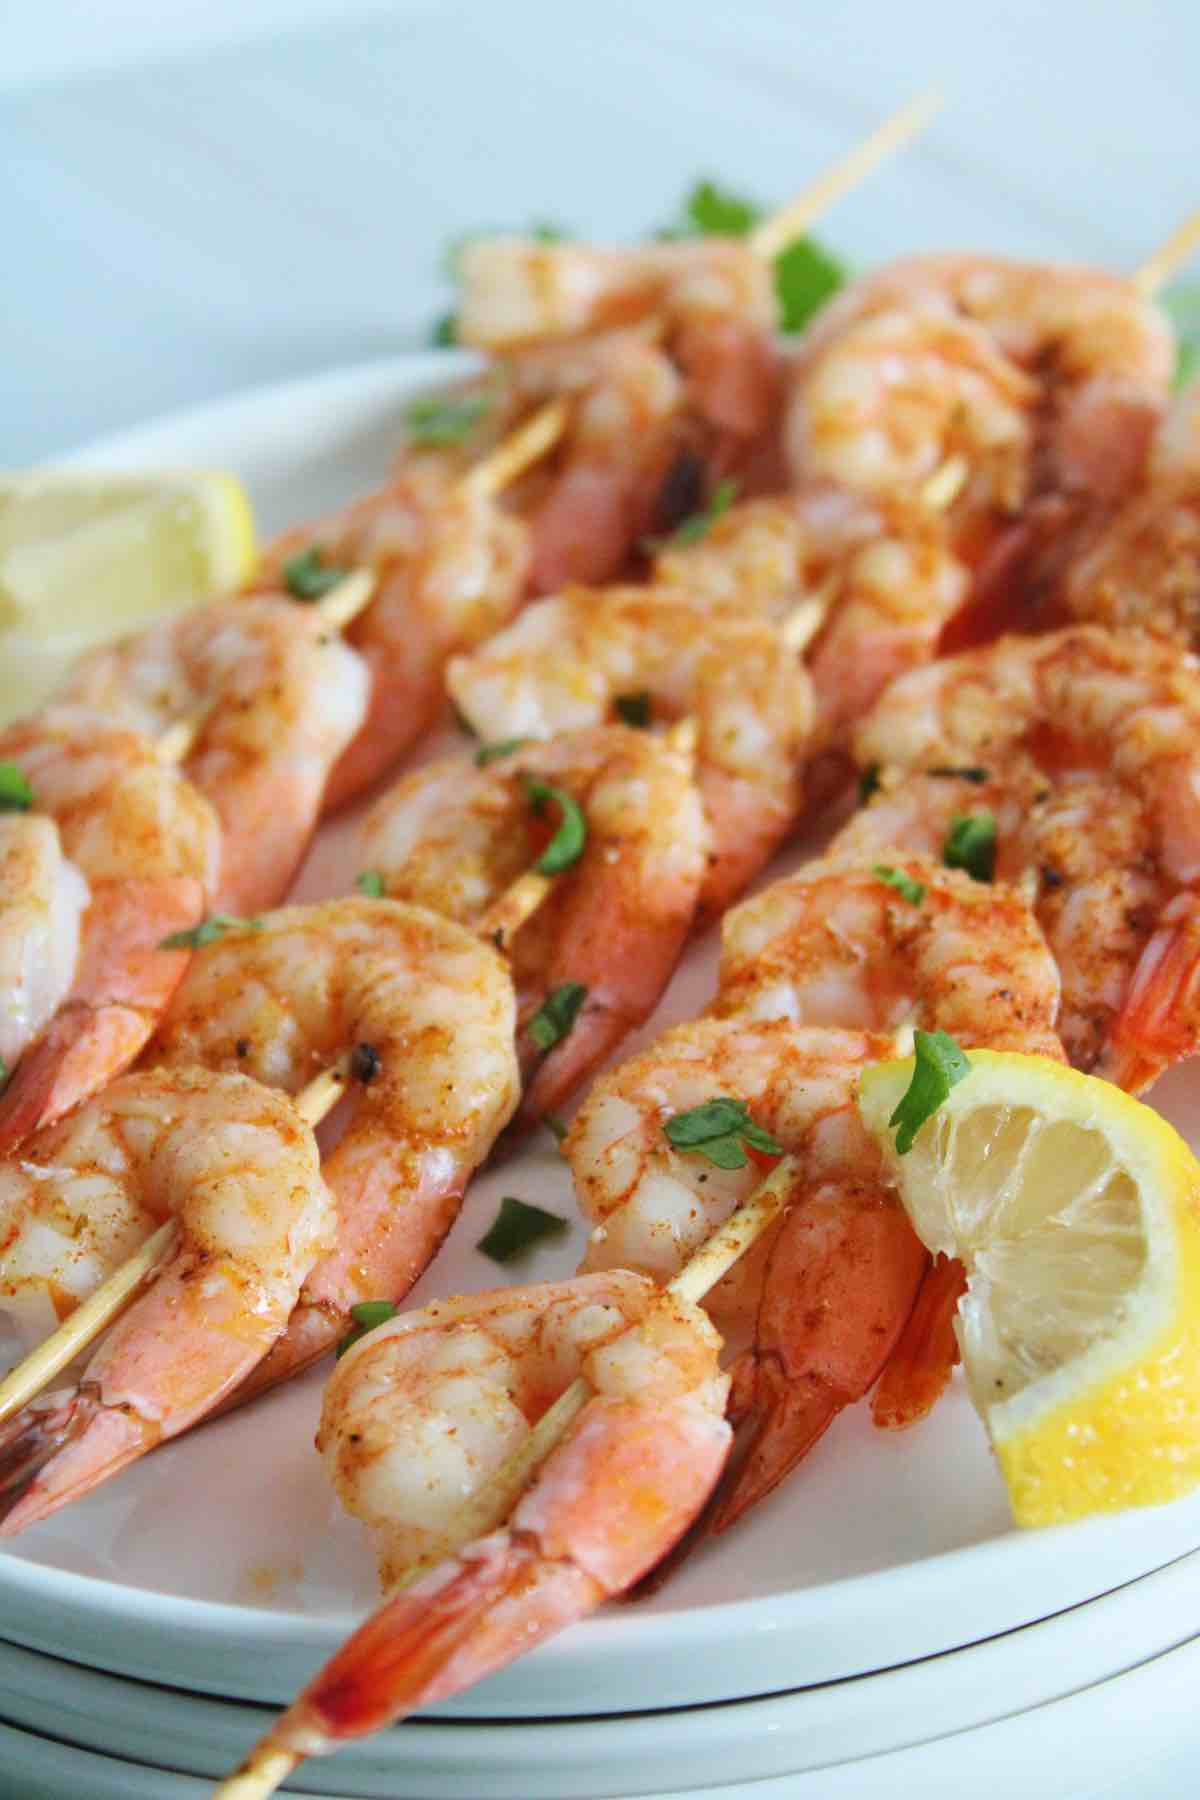 Juicy shrimp skewers are marinated then grilled.